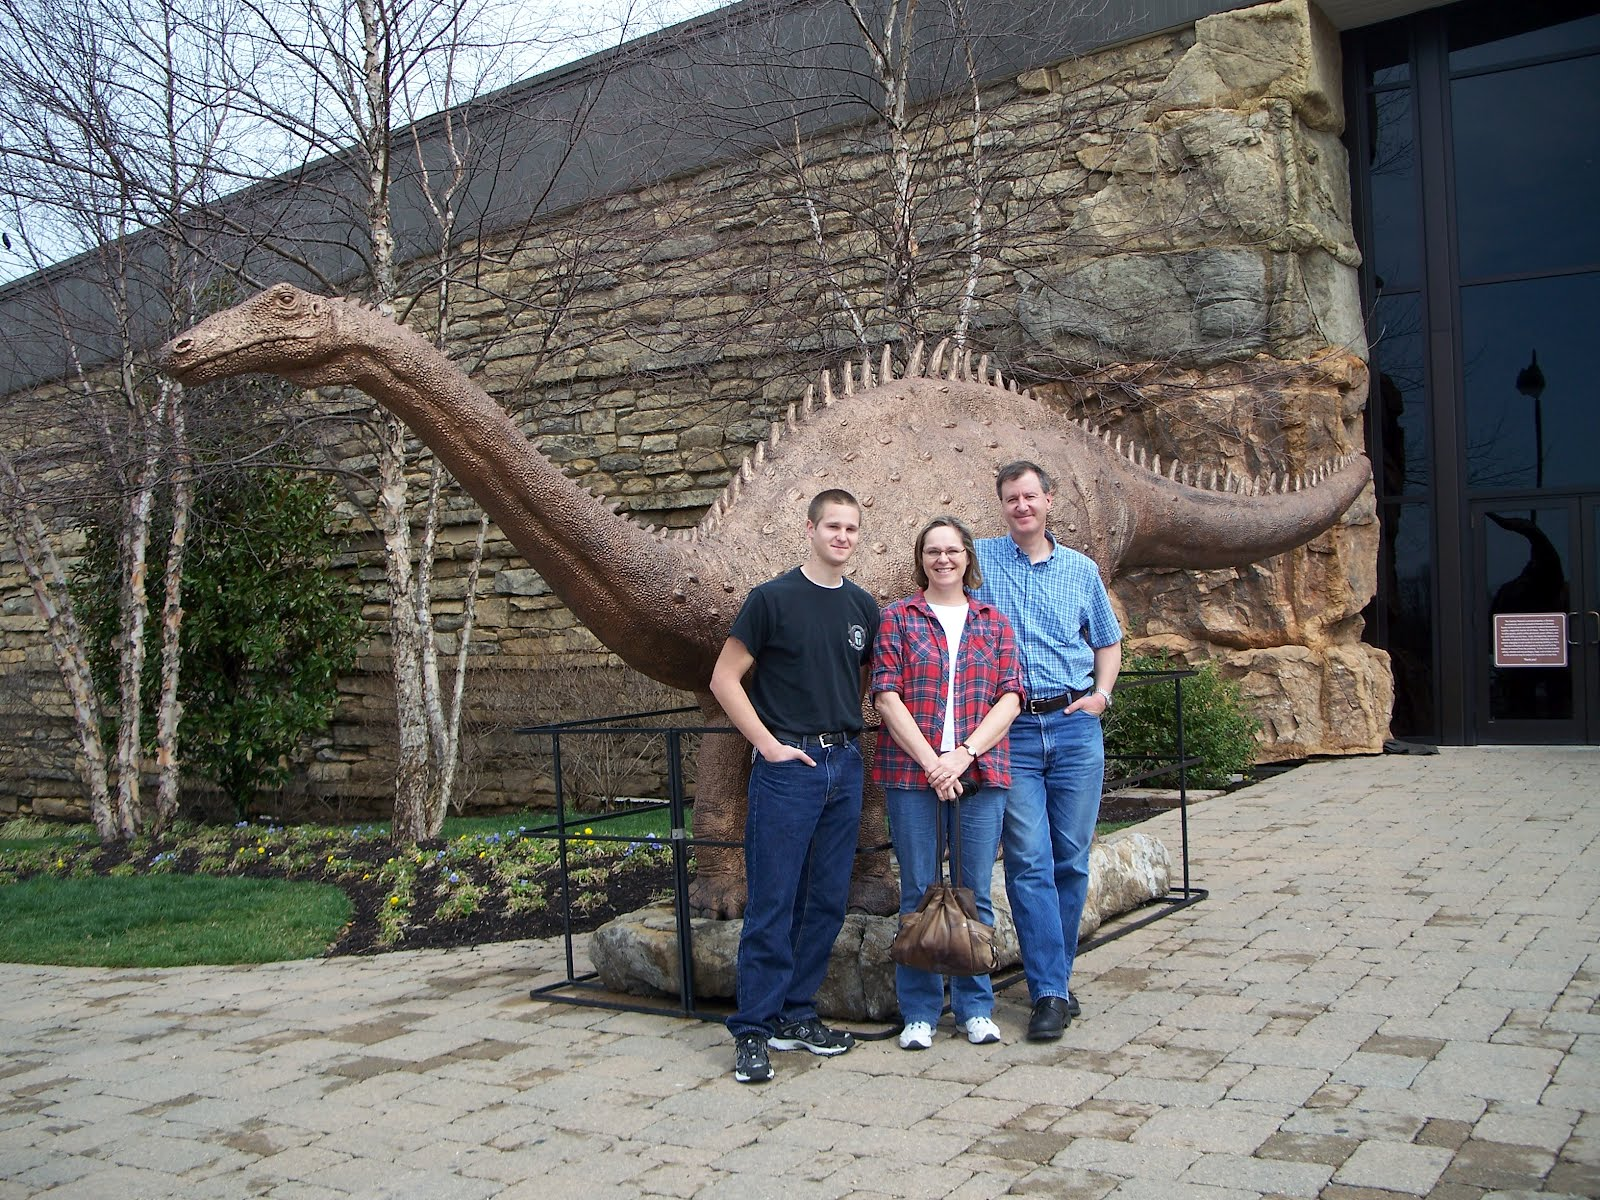 The Little Family Creation Museum